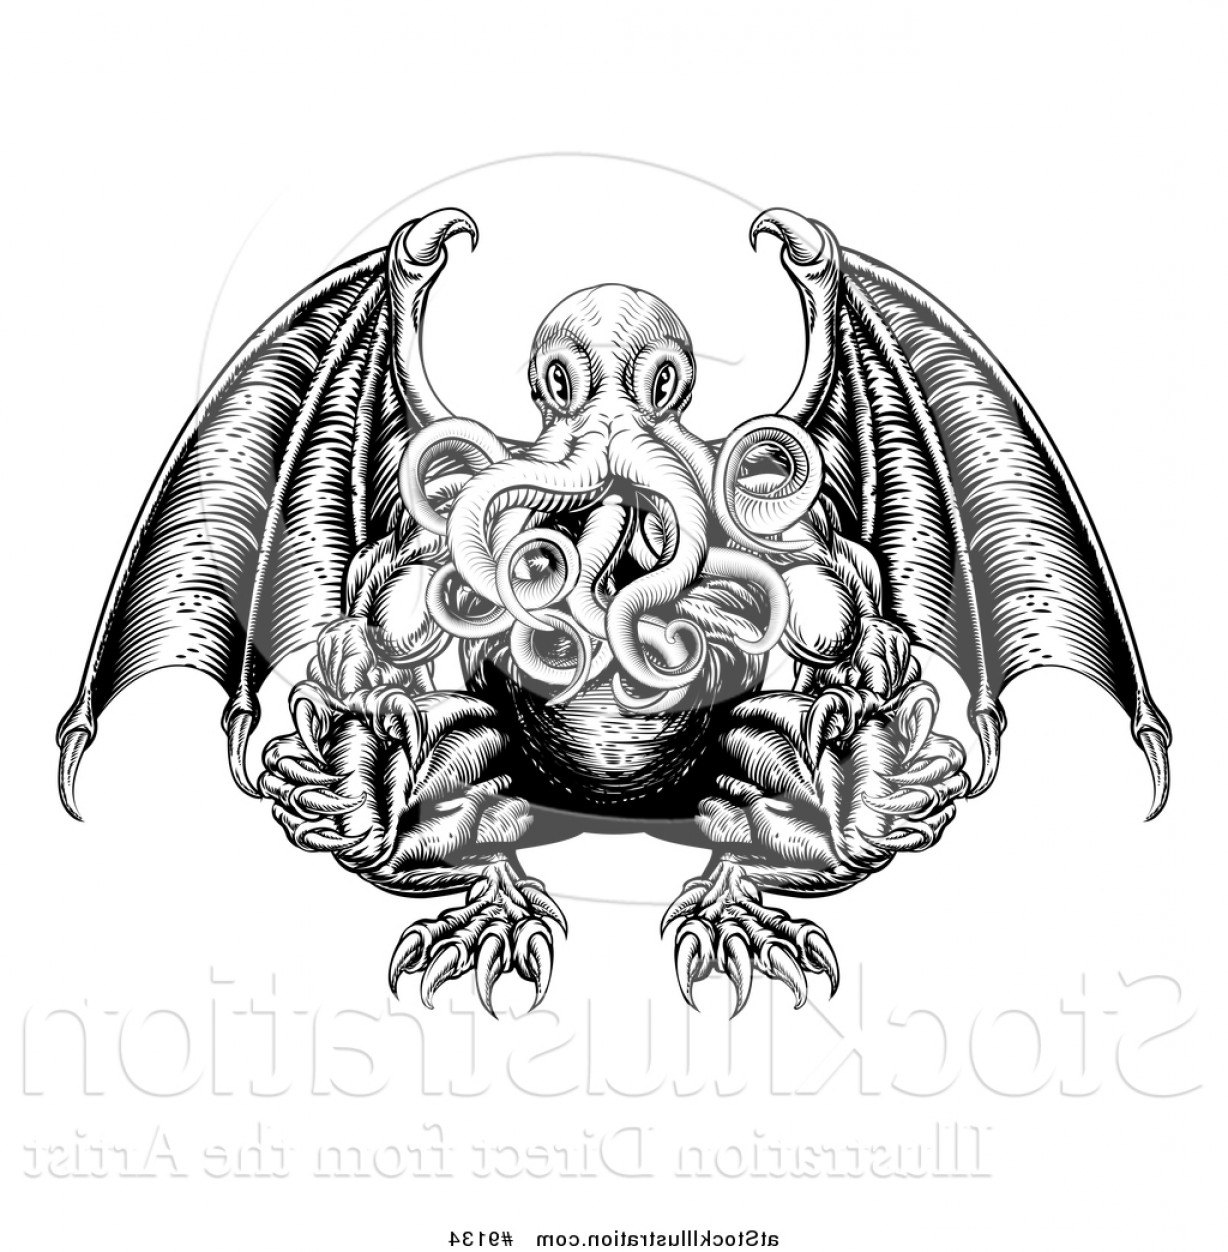 Vector Hi Res Black And White Wing: Vector Illustration Of A Black And White Woodblock Winged Octopus Cthulhu Monster By Atstockillustration